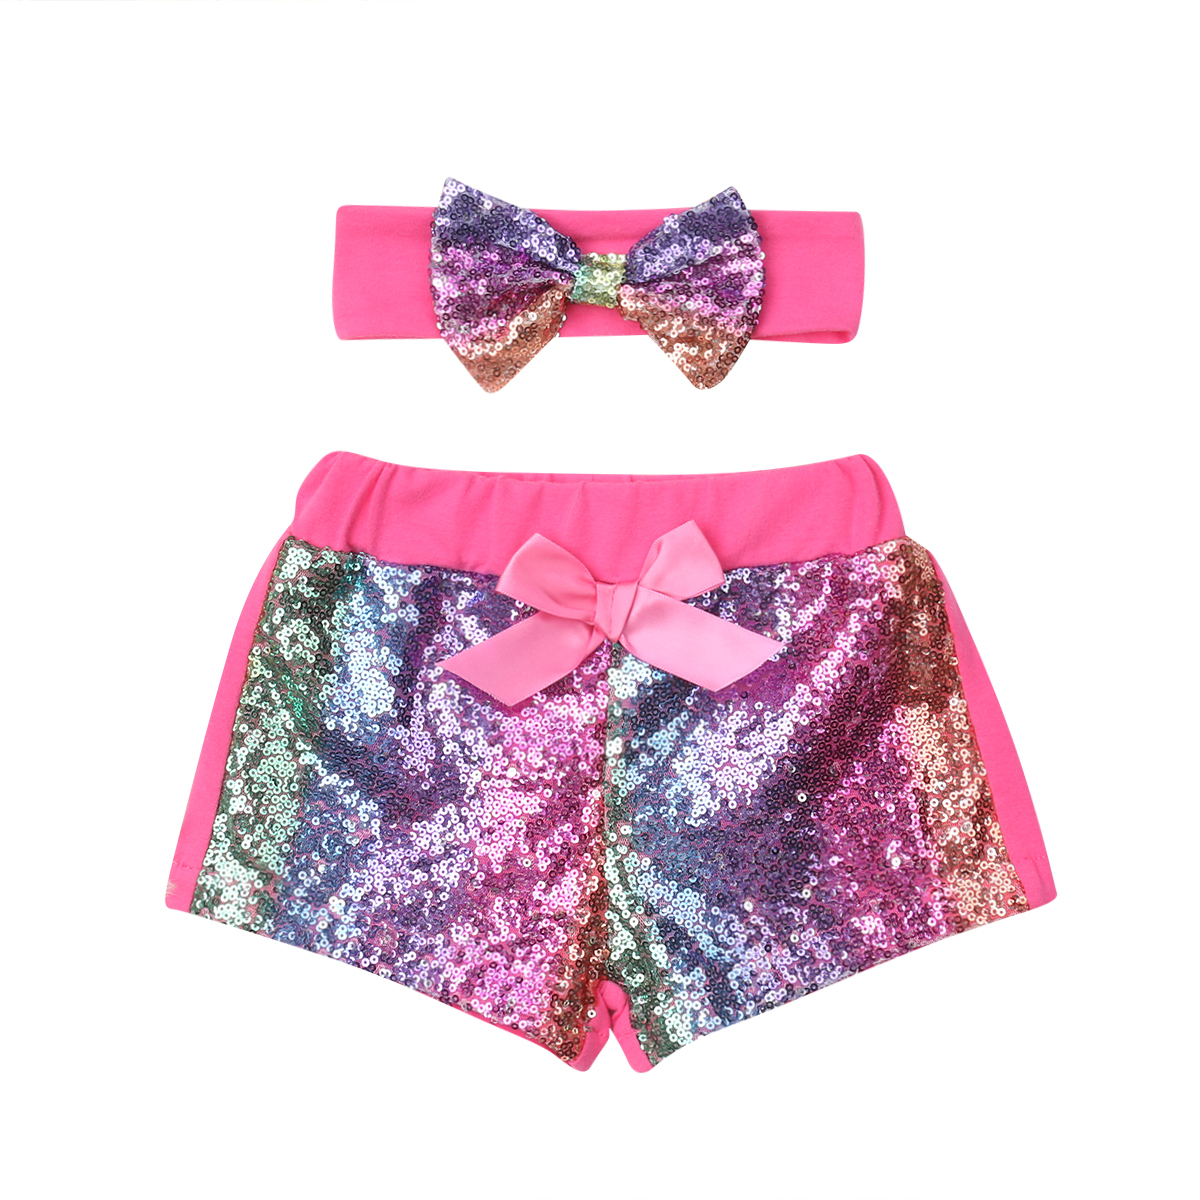 Toddler Infant Kids Baby Clothes Girl Shorts Bow-Knot Party Bottoms Sequin Headbands 2PCS Girls 0-3TToddler Infant Kids Baby Clothes Girl Shorts Bow-Knot Party Bottoms Sequin Headbands 2PCS Girls 0-3T